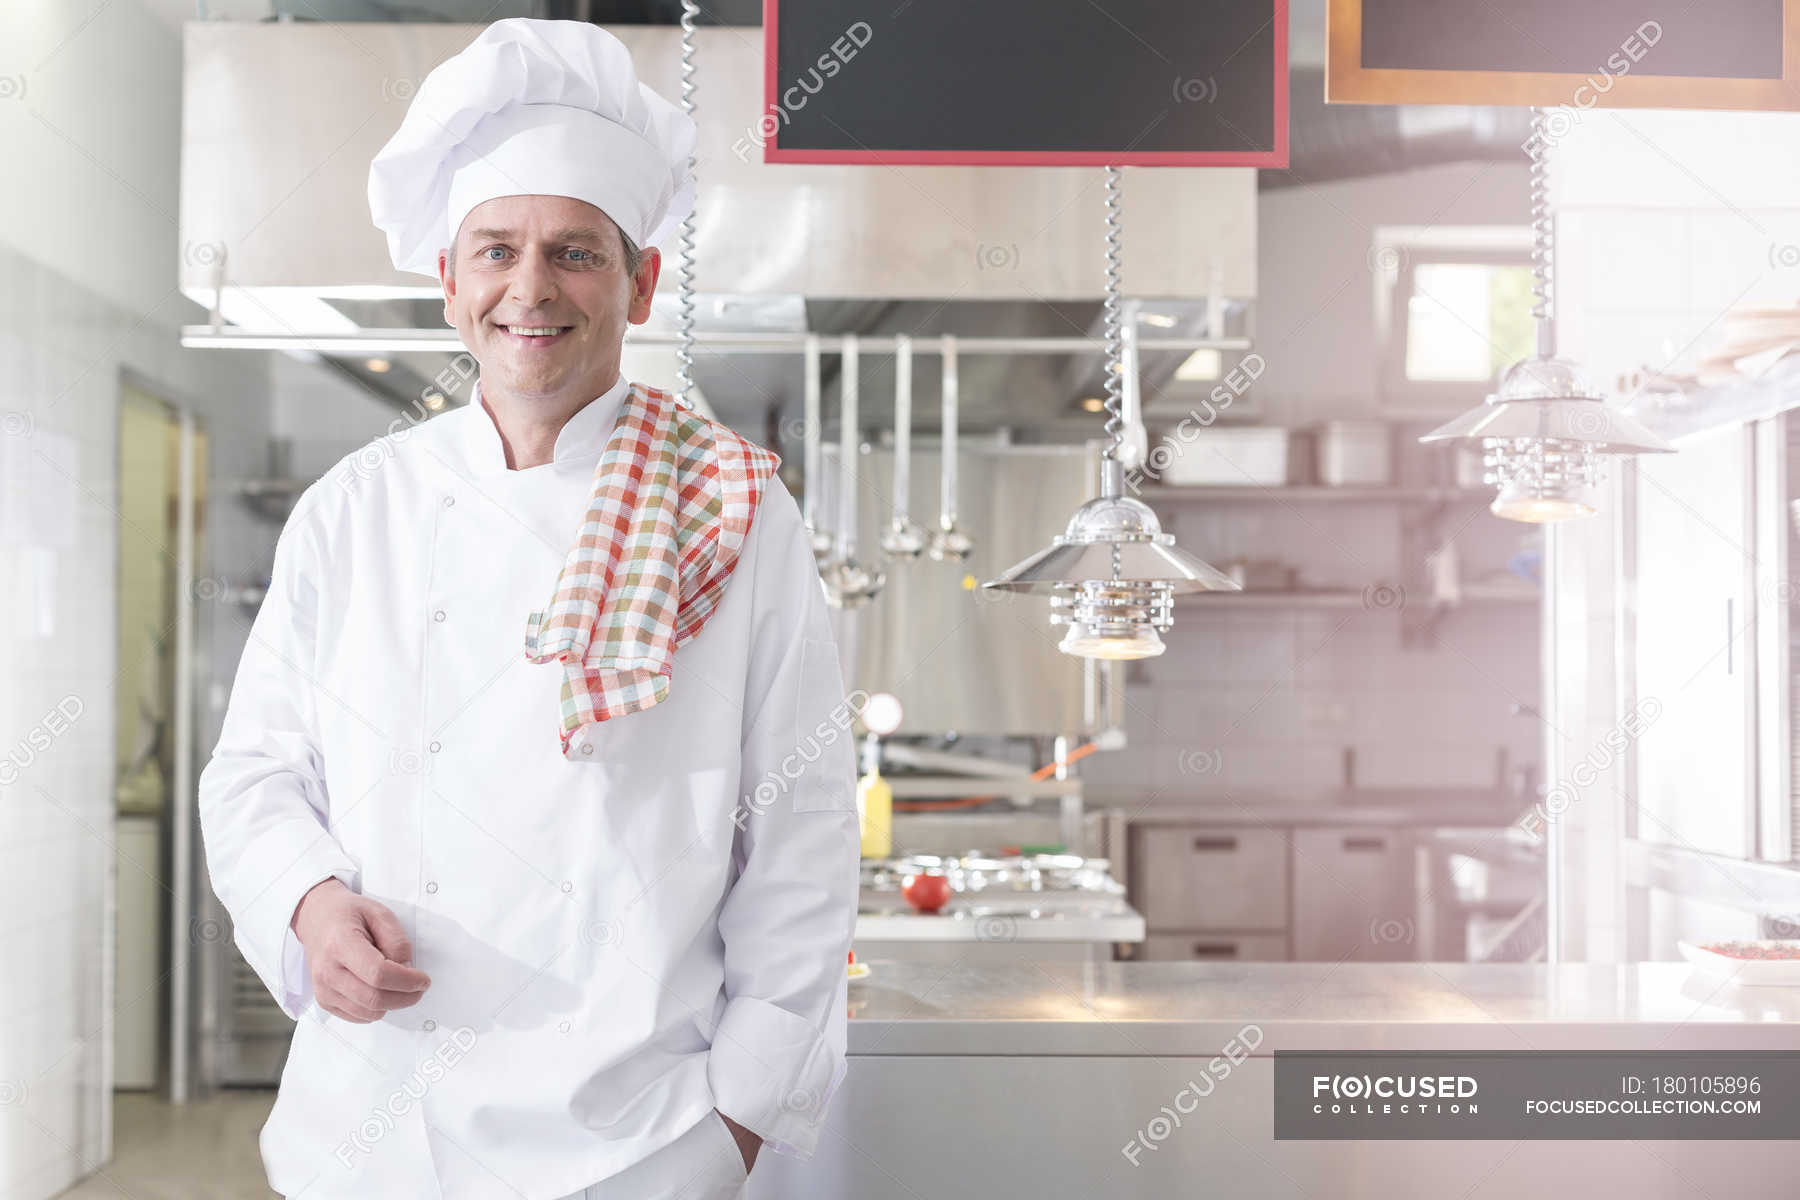 Smiling Chef In Kitchen With Towel On Shoulder Stock Photo 180105896